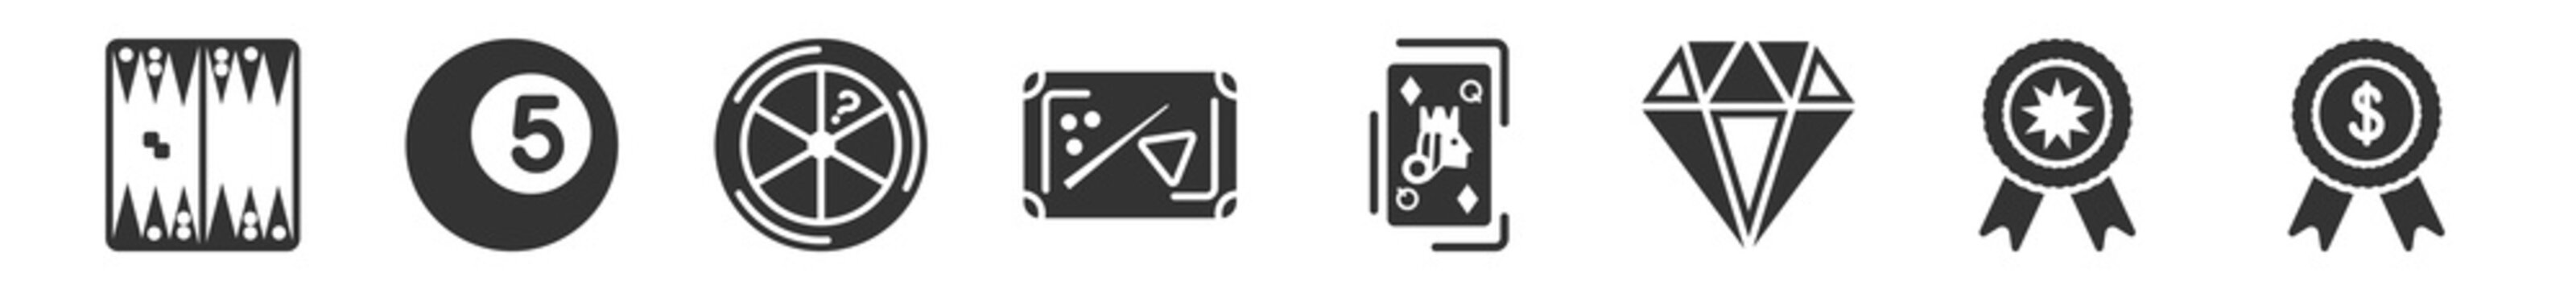 filled set of gaming icons. glyph vector icons such as backgammon, billiard ball, trivial, pool table, queen of diamonds, money award. vector illustration.